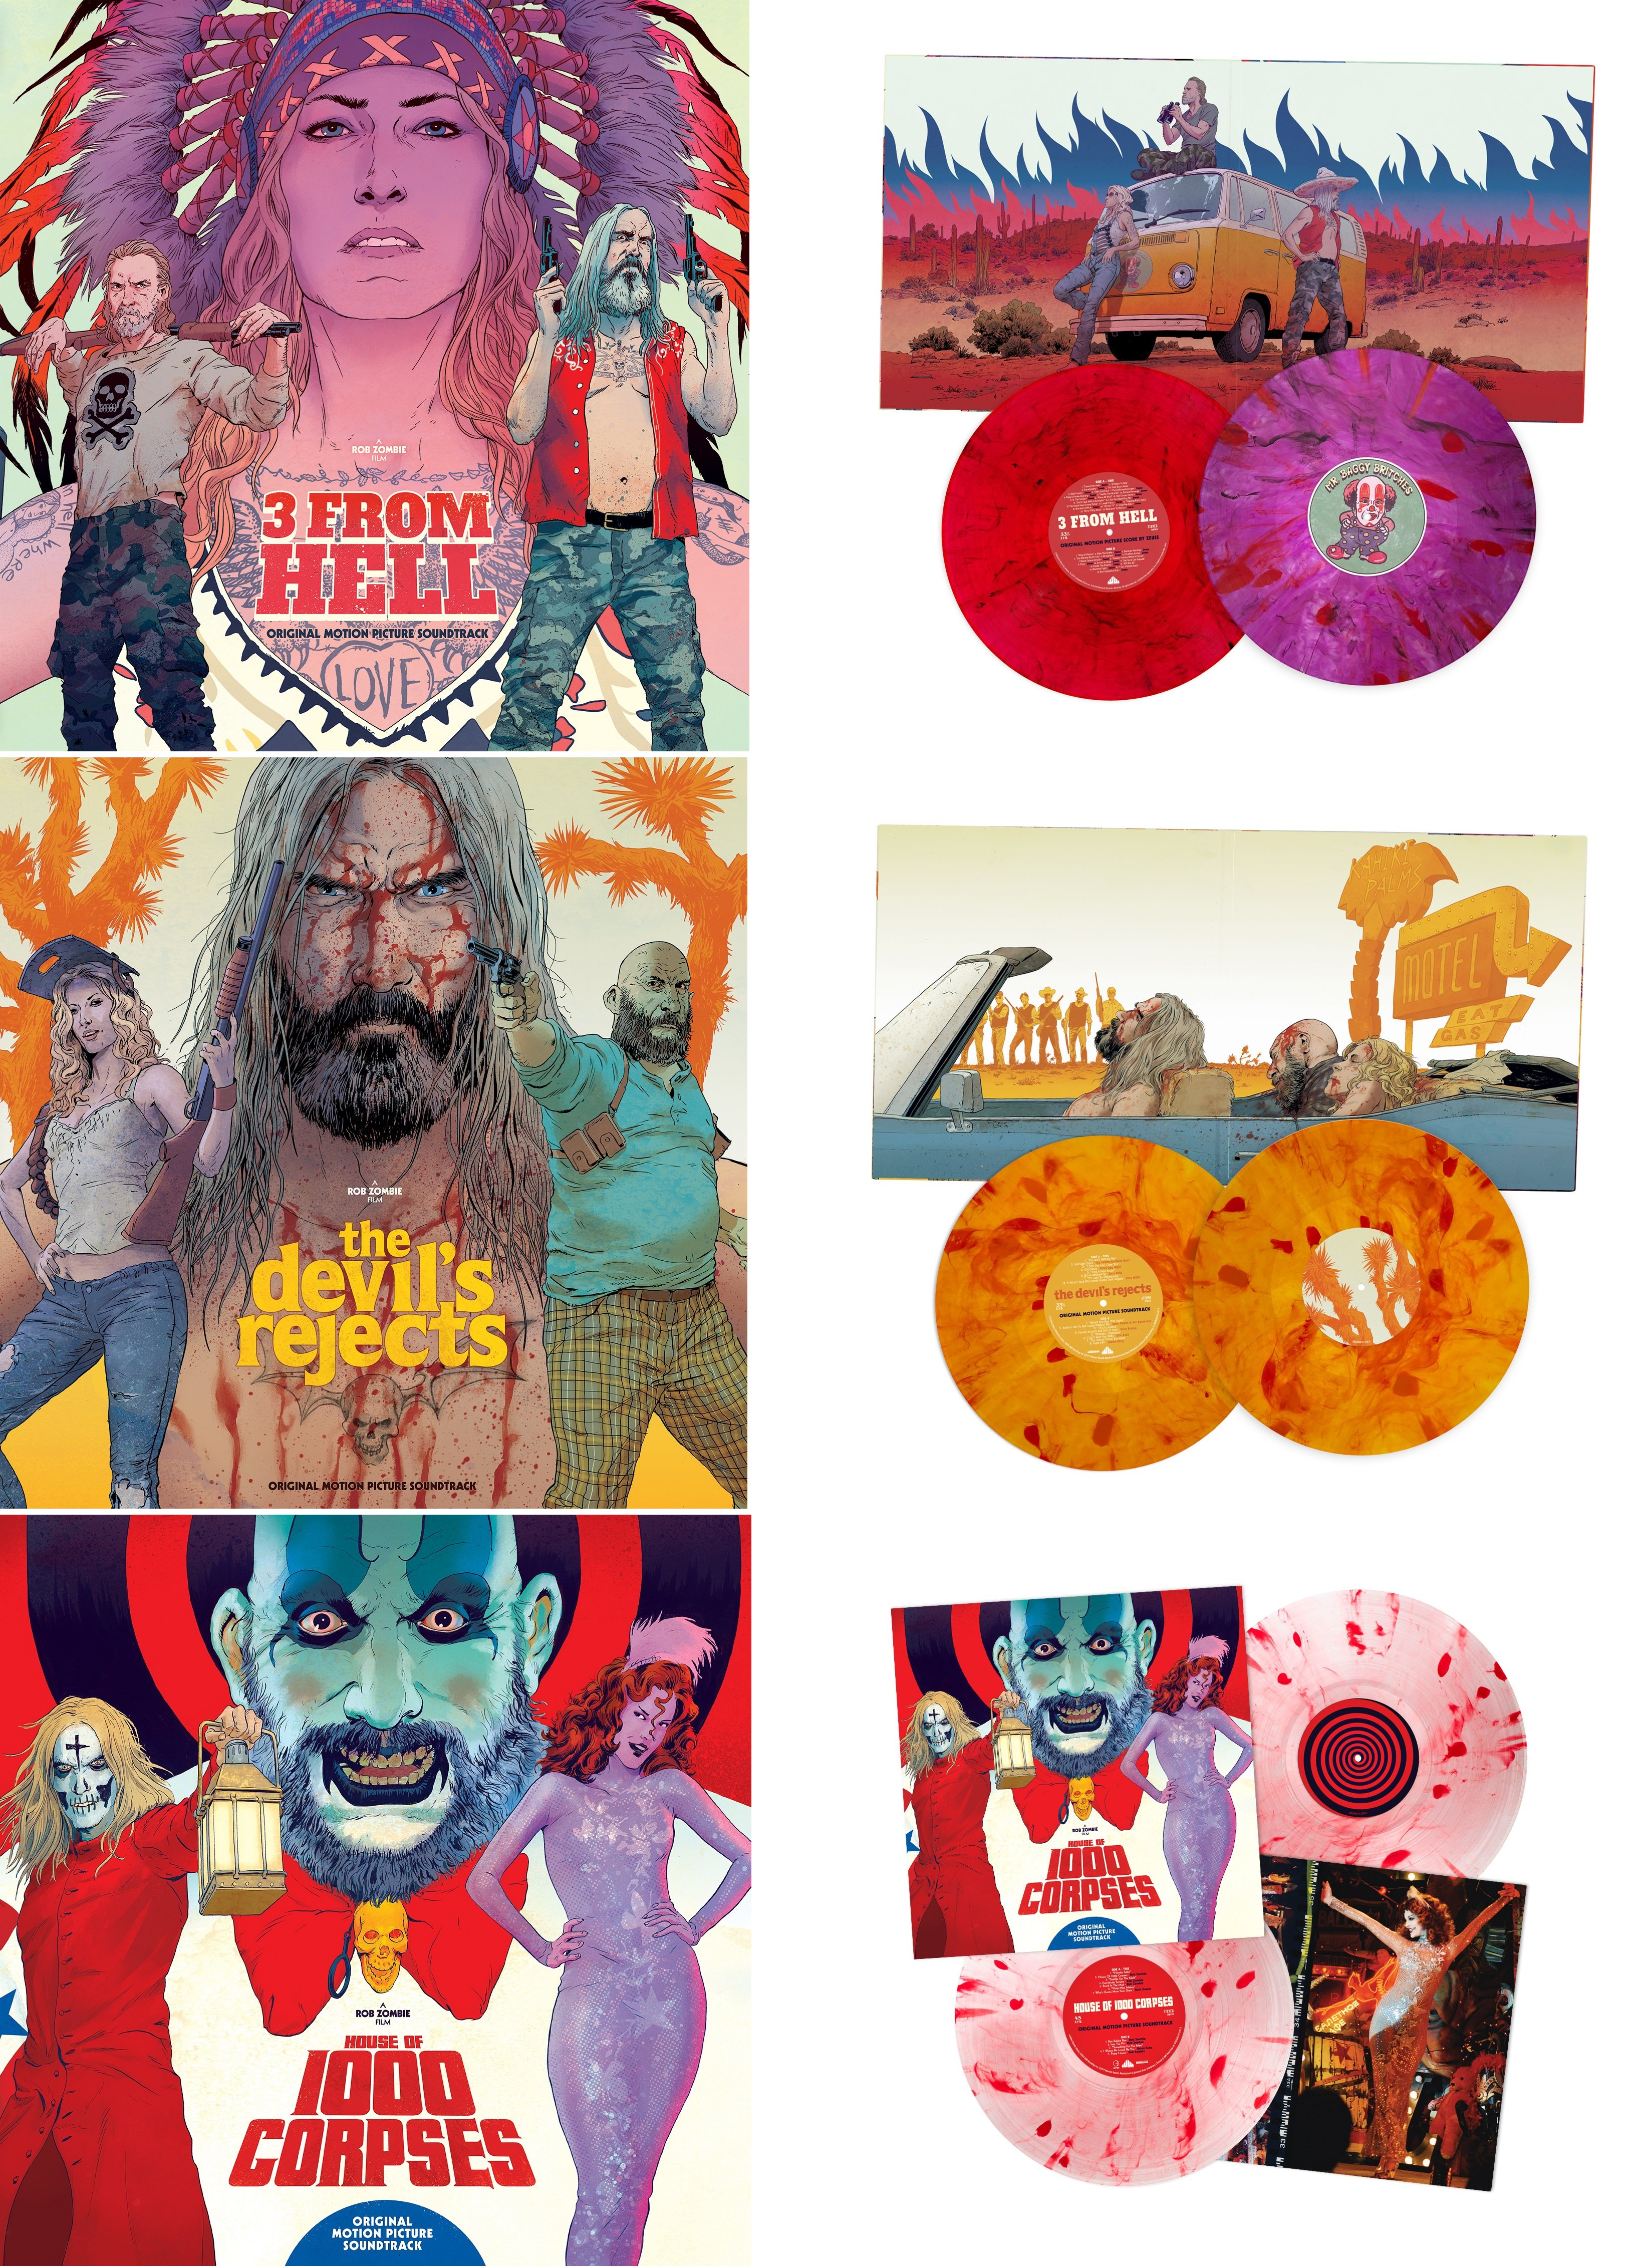 3 From Hell - House Of 1000 Corpses - The Devil's Rejects